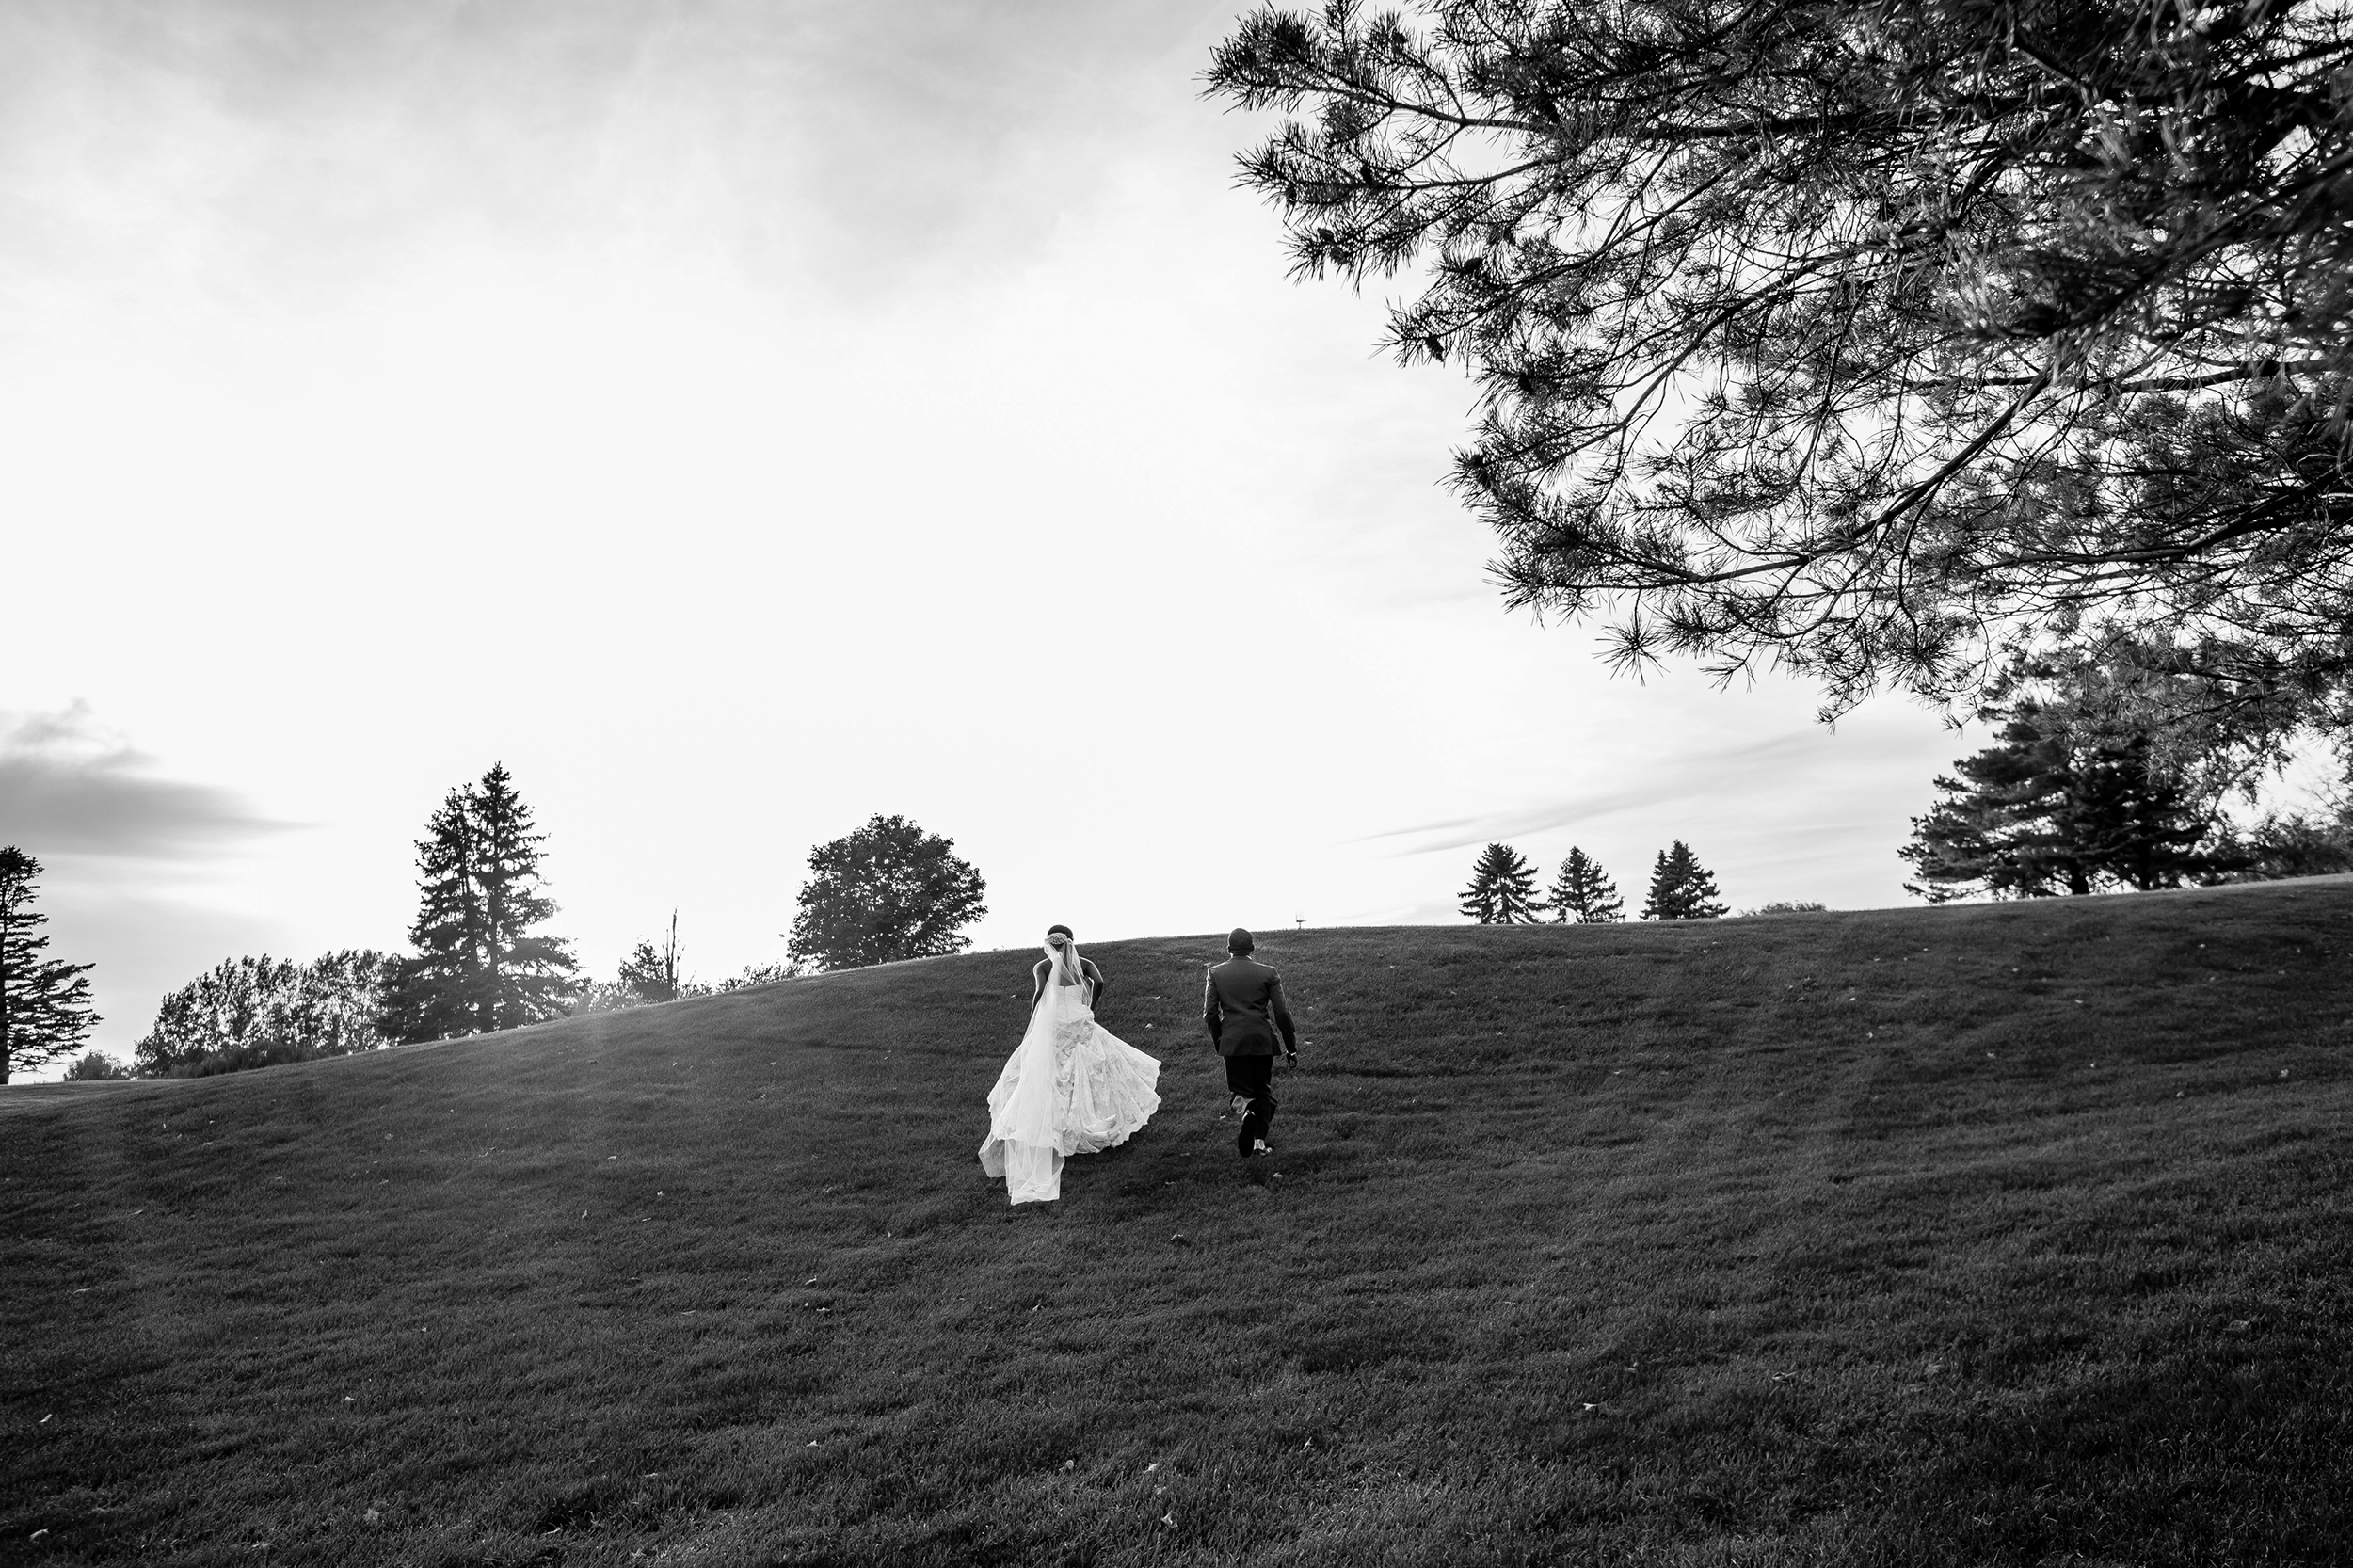 minneapolis photography wedding.jpg